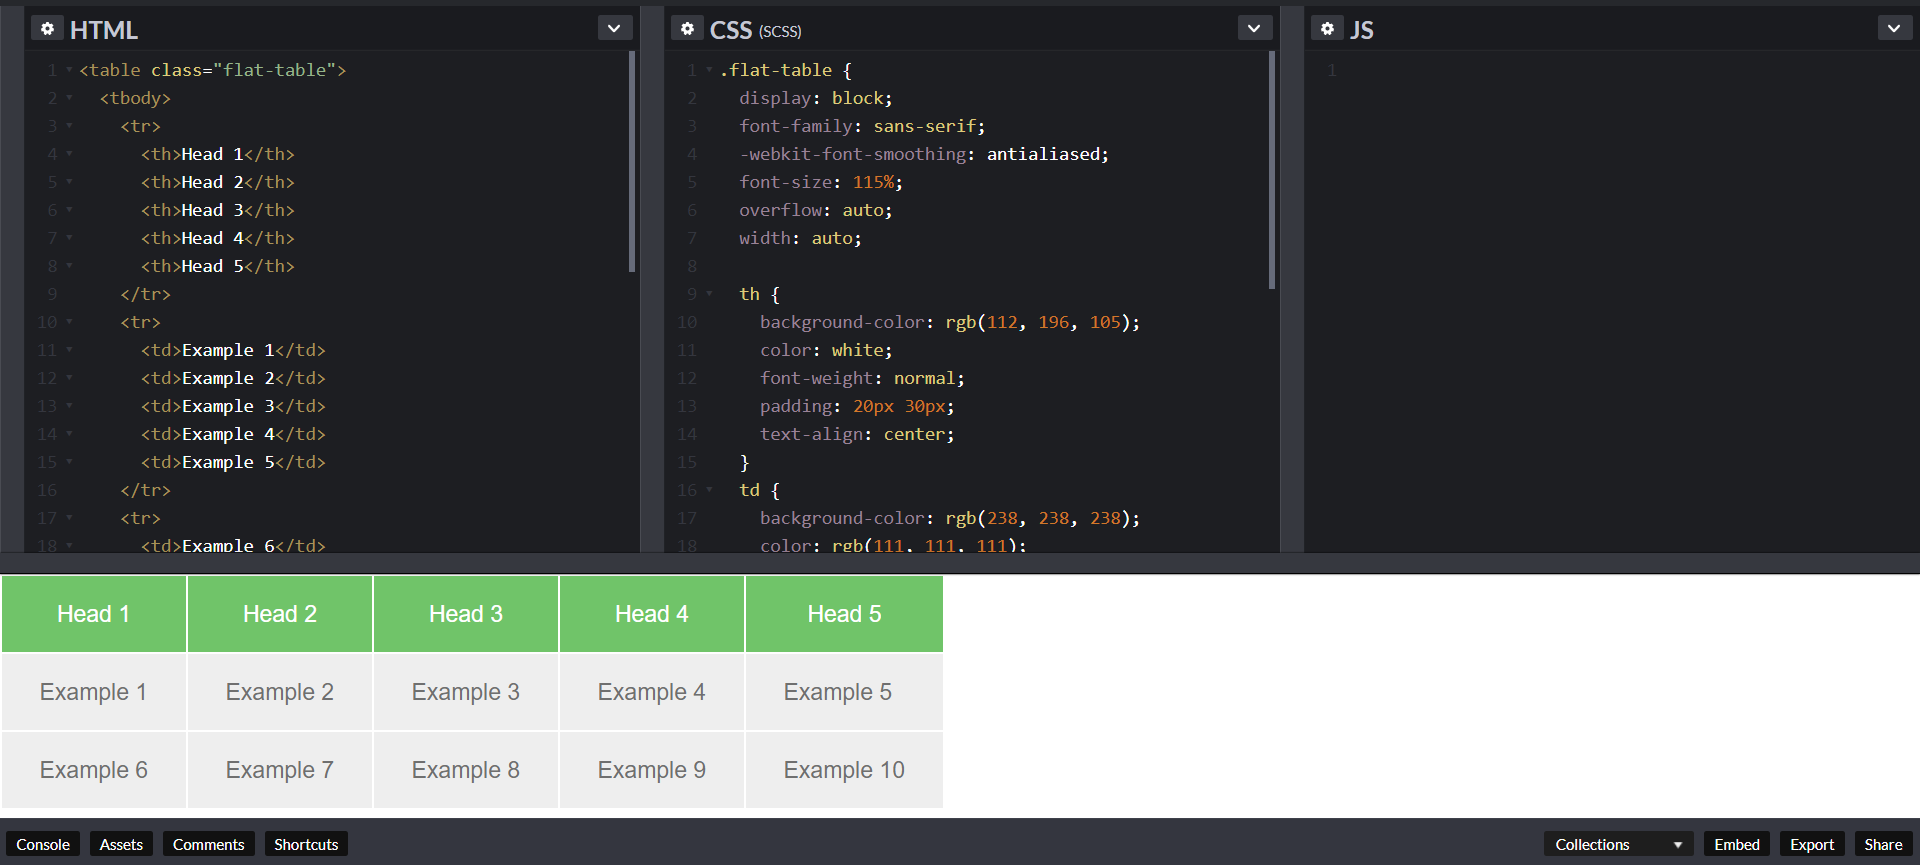 Learn HTML & CSS For Free With Our Expert Tutorials »